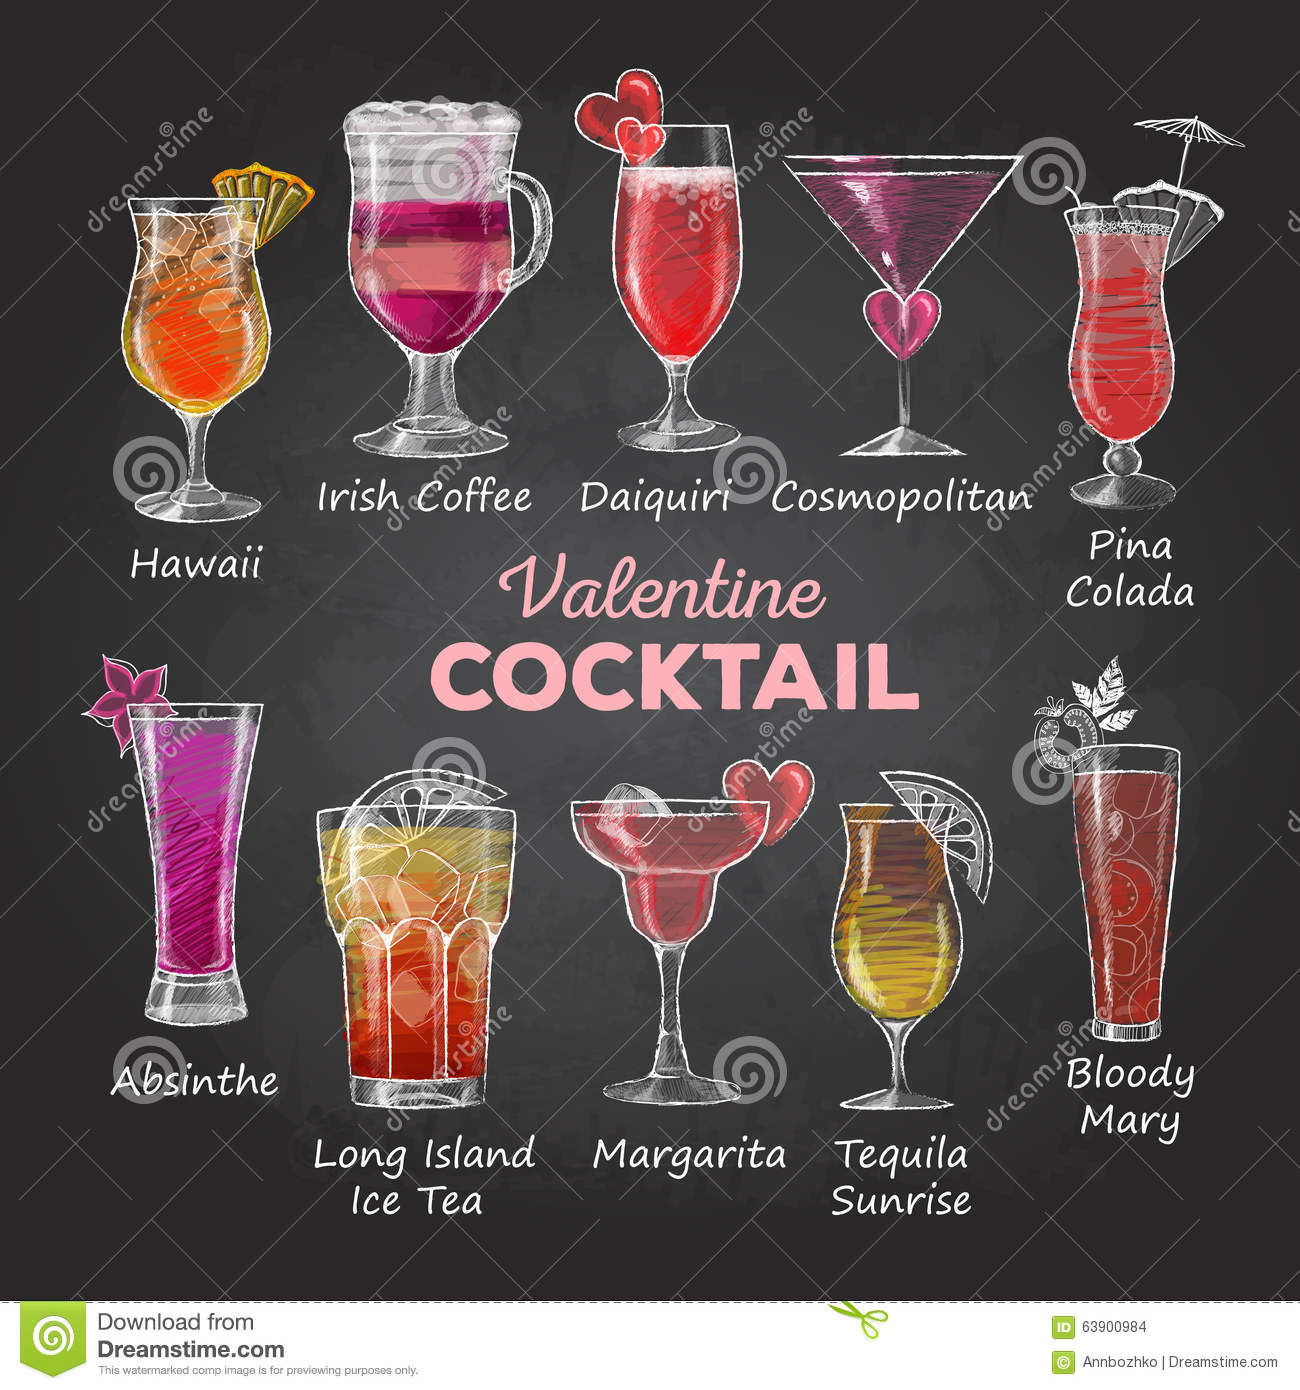 Valentine cocktail menu